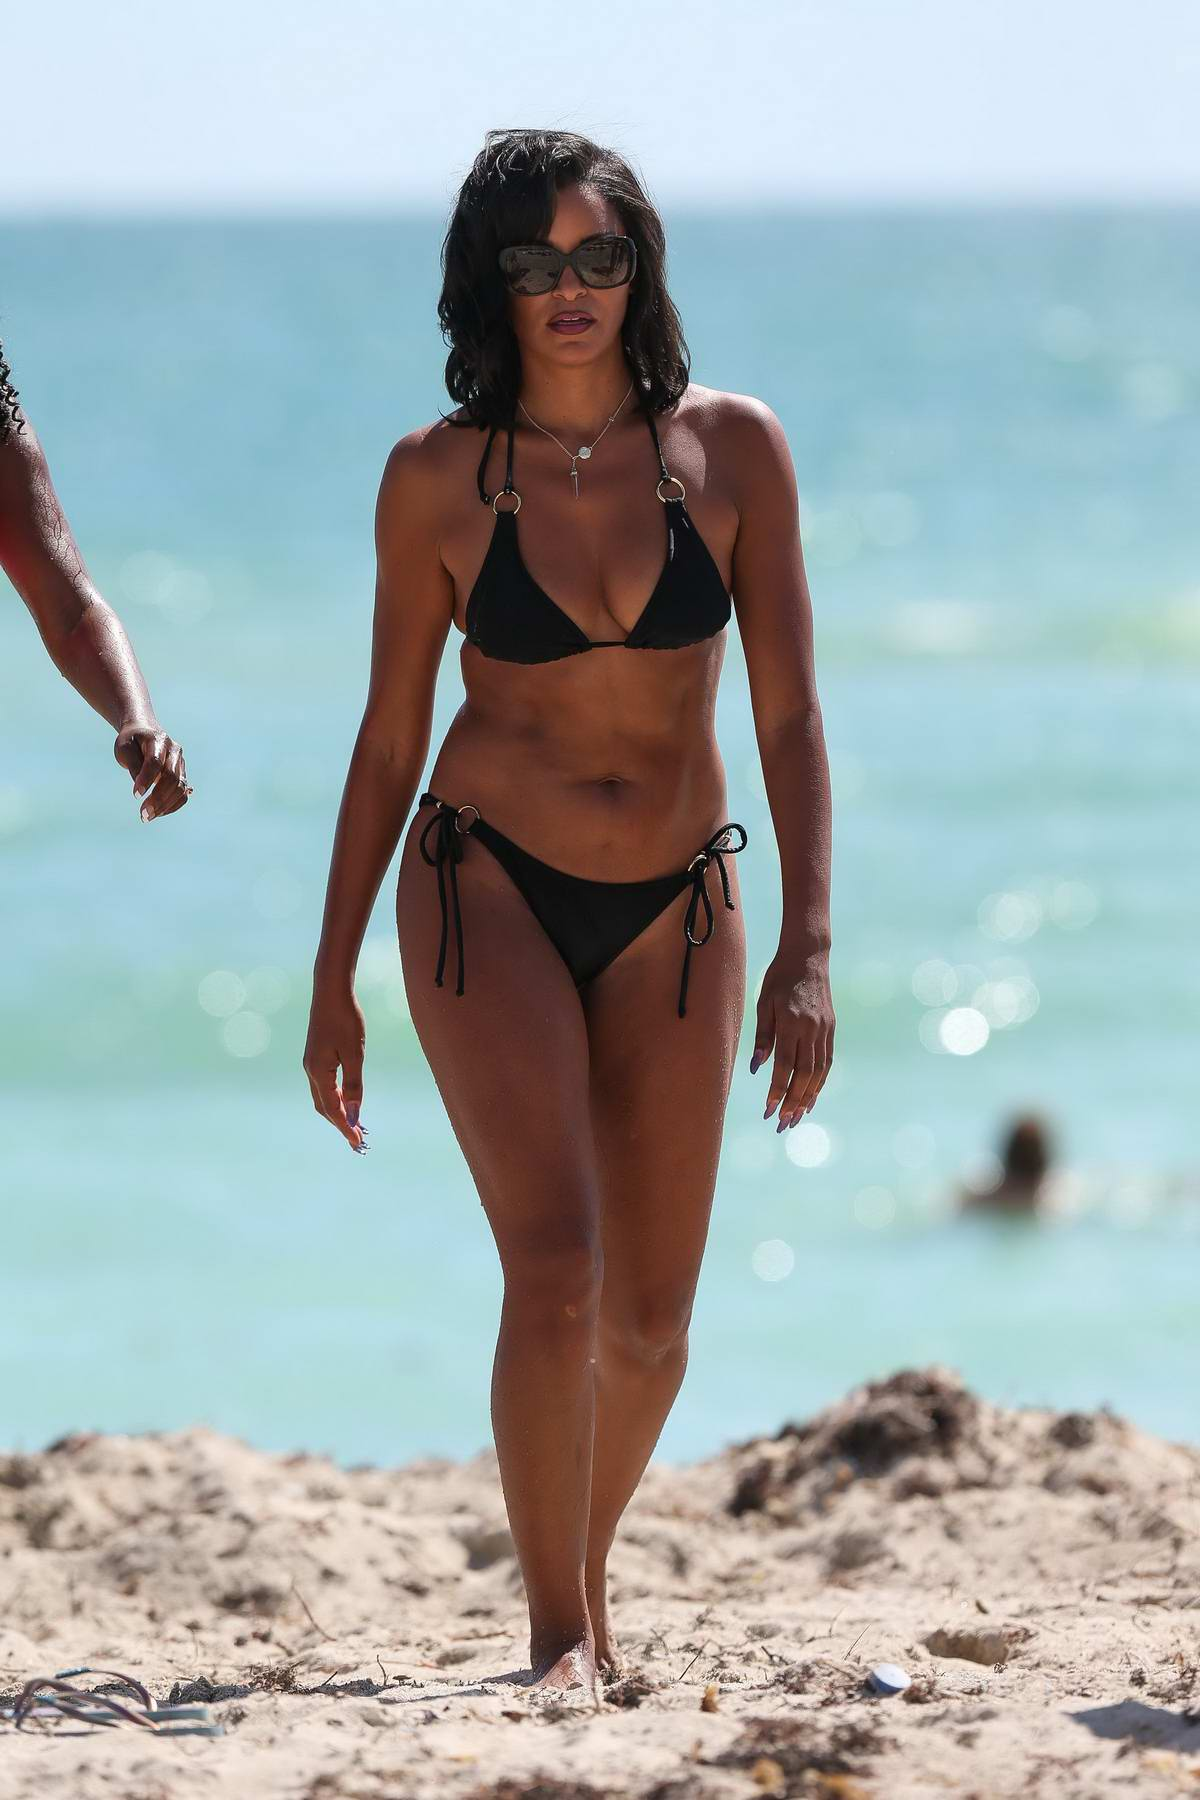 Claudia Jordan in a black bikini enjoying the ocean in Miami Beach, Florida